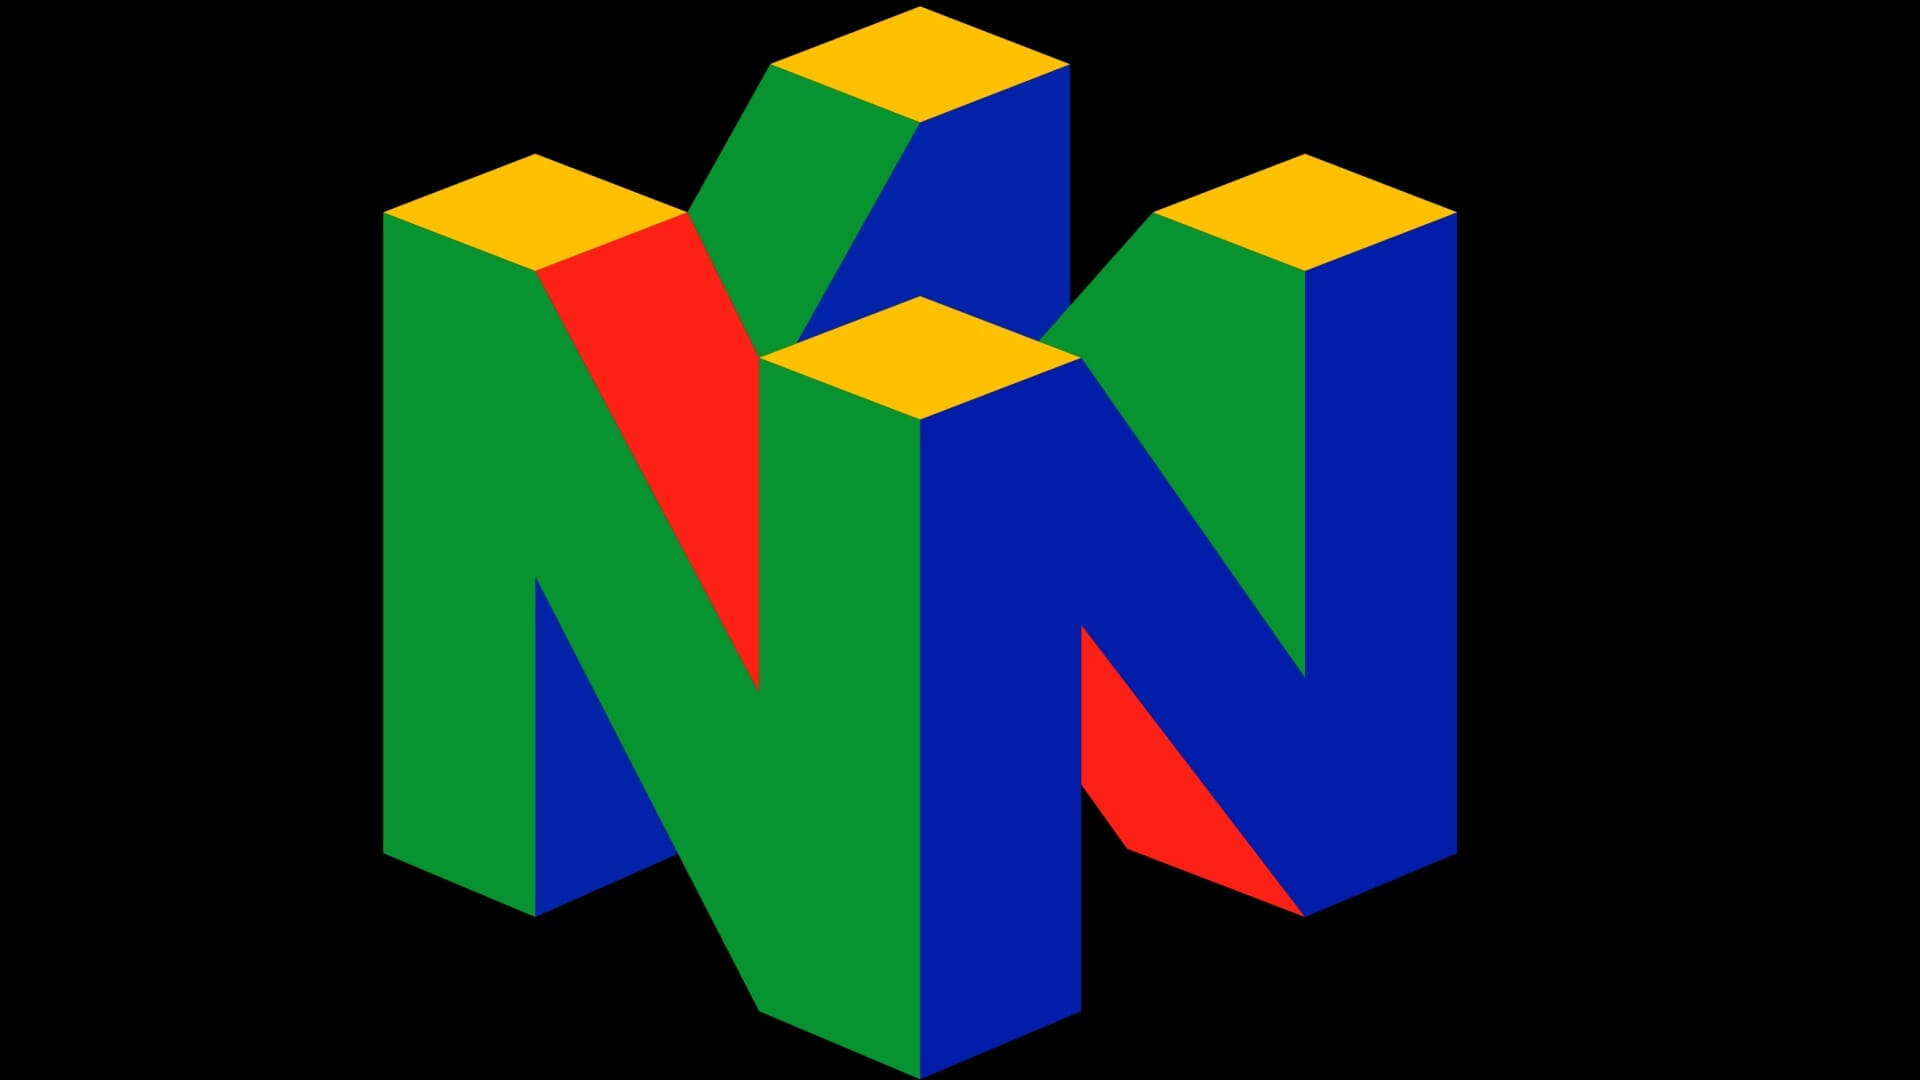 N64 DD English Prototype Discovered